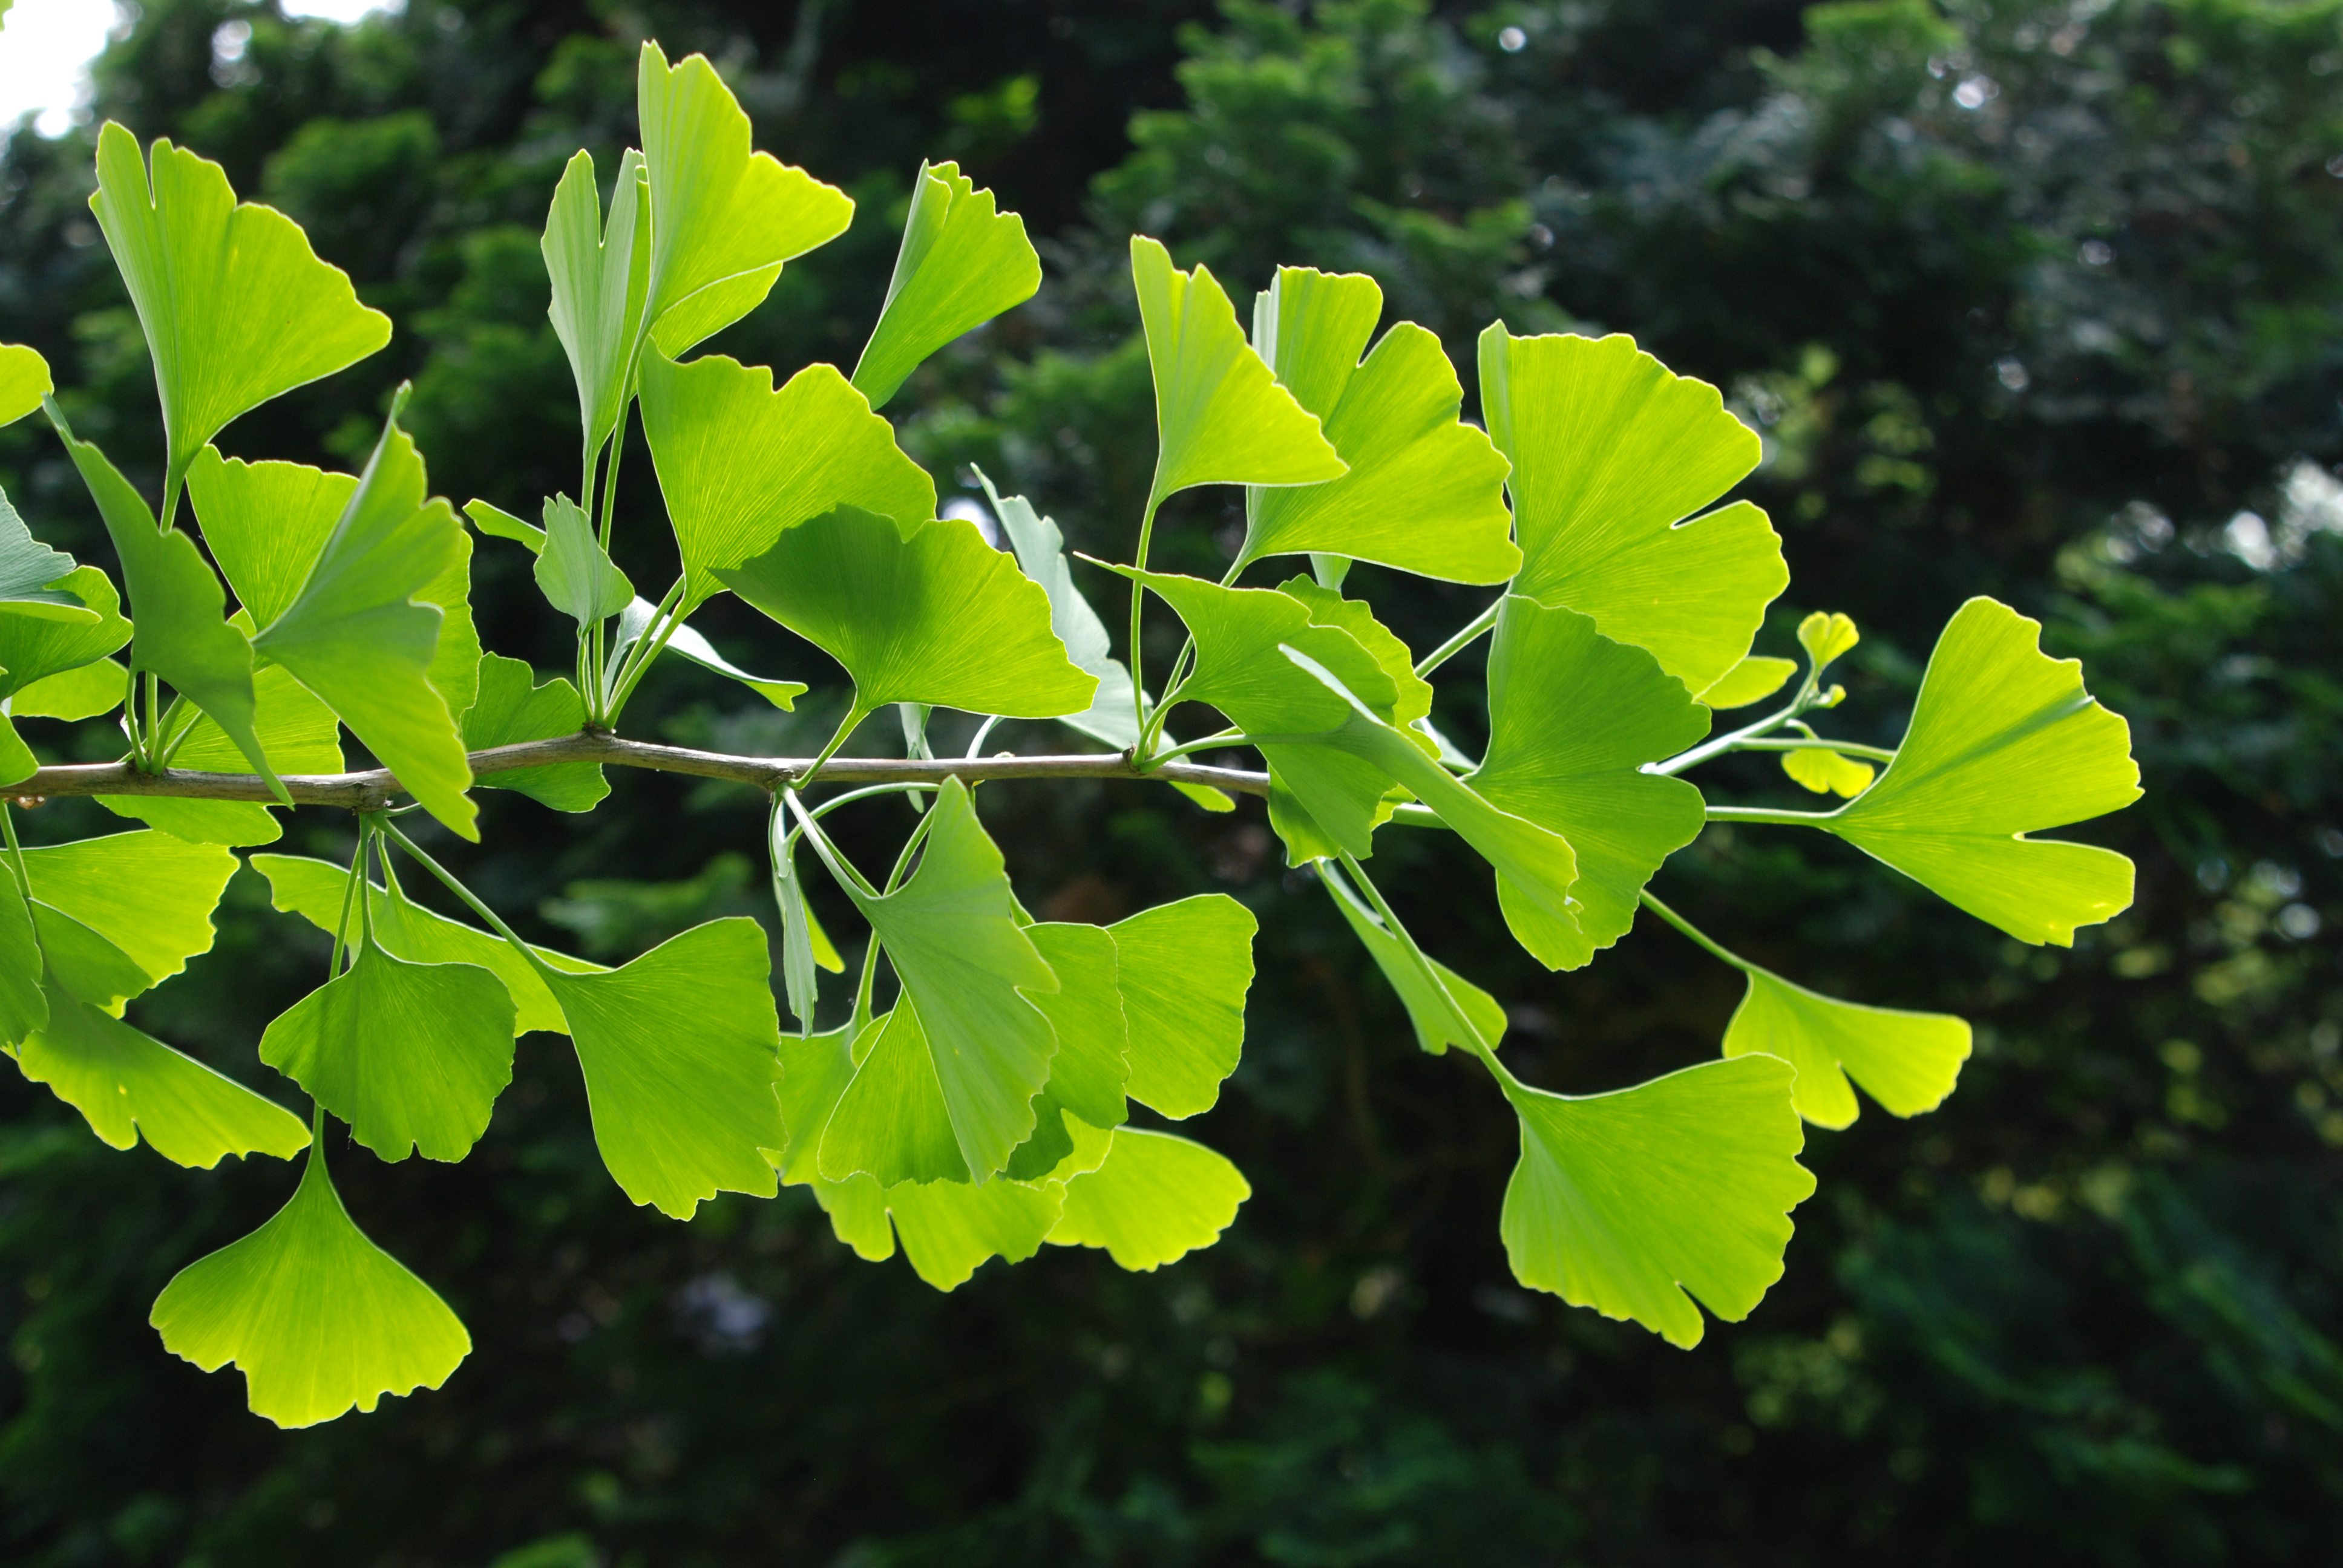 green leaves of a ginkgo tree